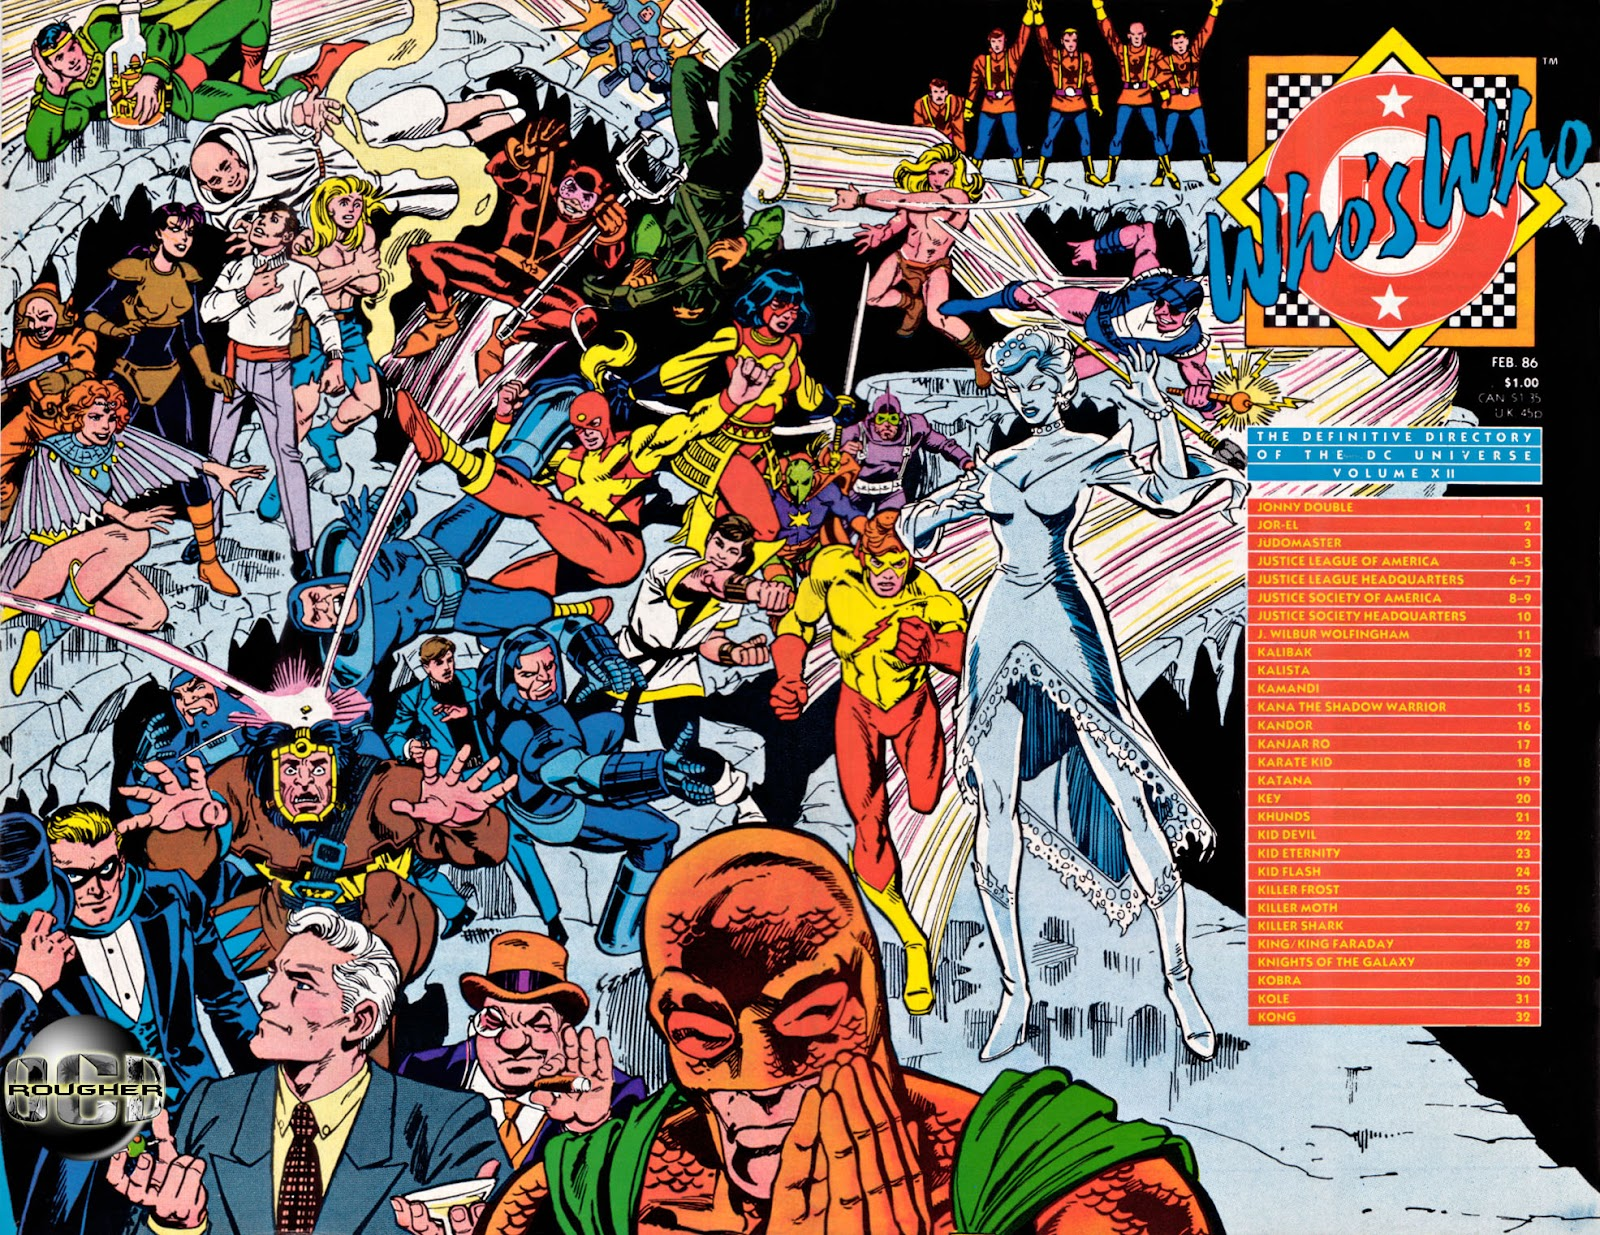 Whos Who: The Definitive Directory of the DC Universe 12 Page 1